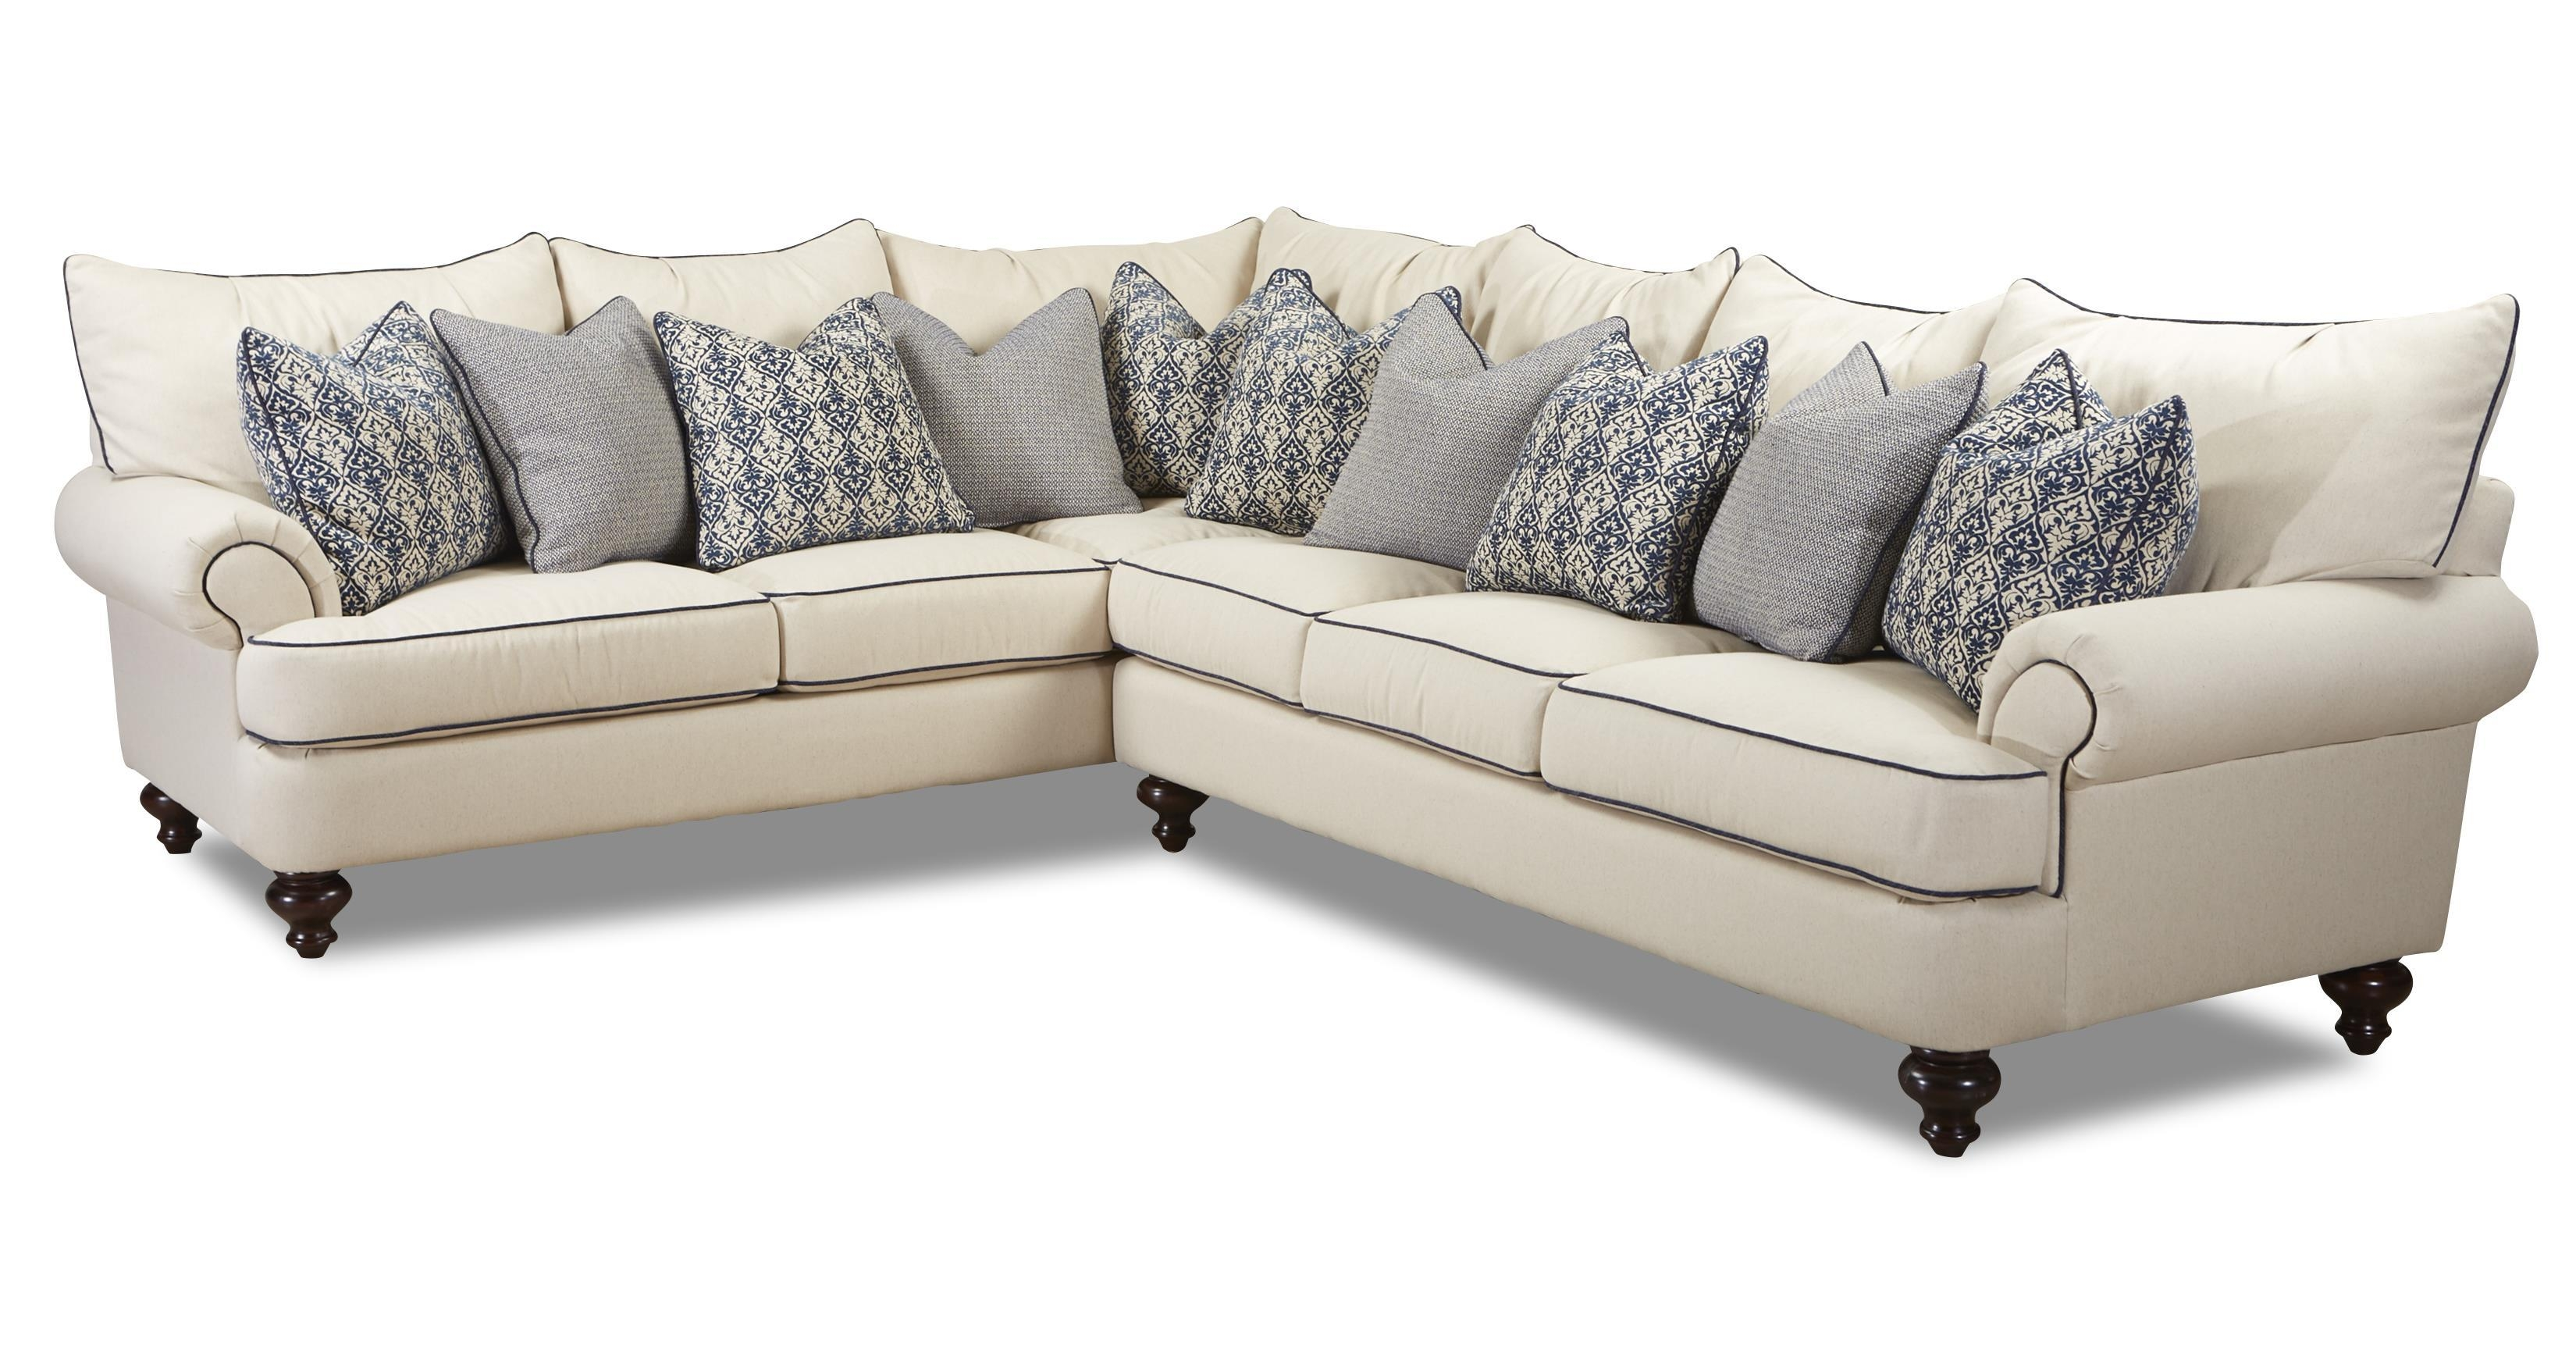 Klaussner Ashworth Shabby Chic Sectional Sofa – Wayside Furniture For Shabby Chic Sofa (Image 13 of 20)